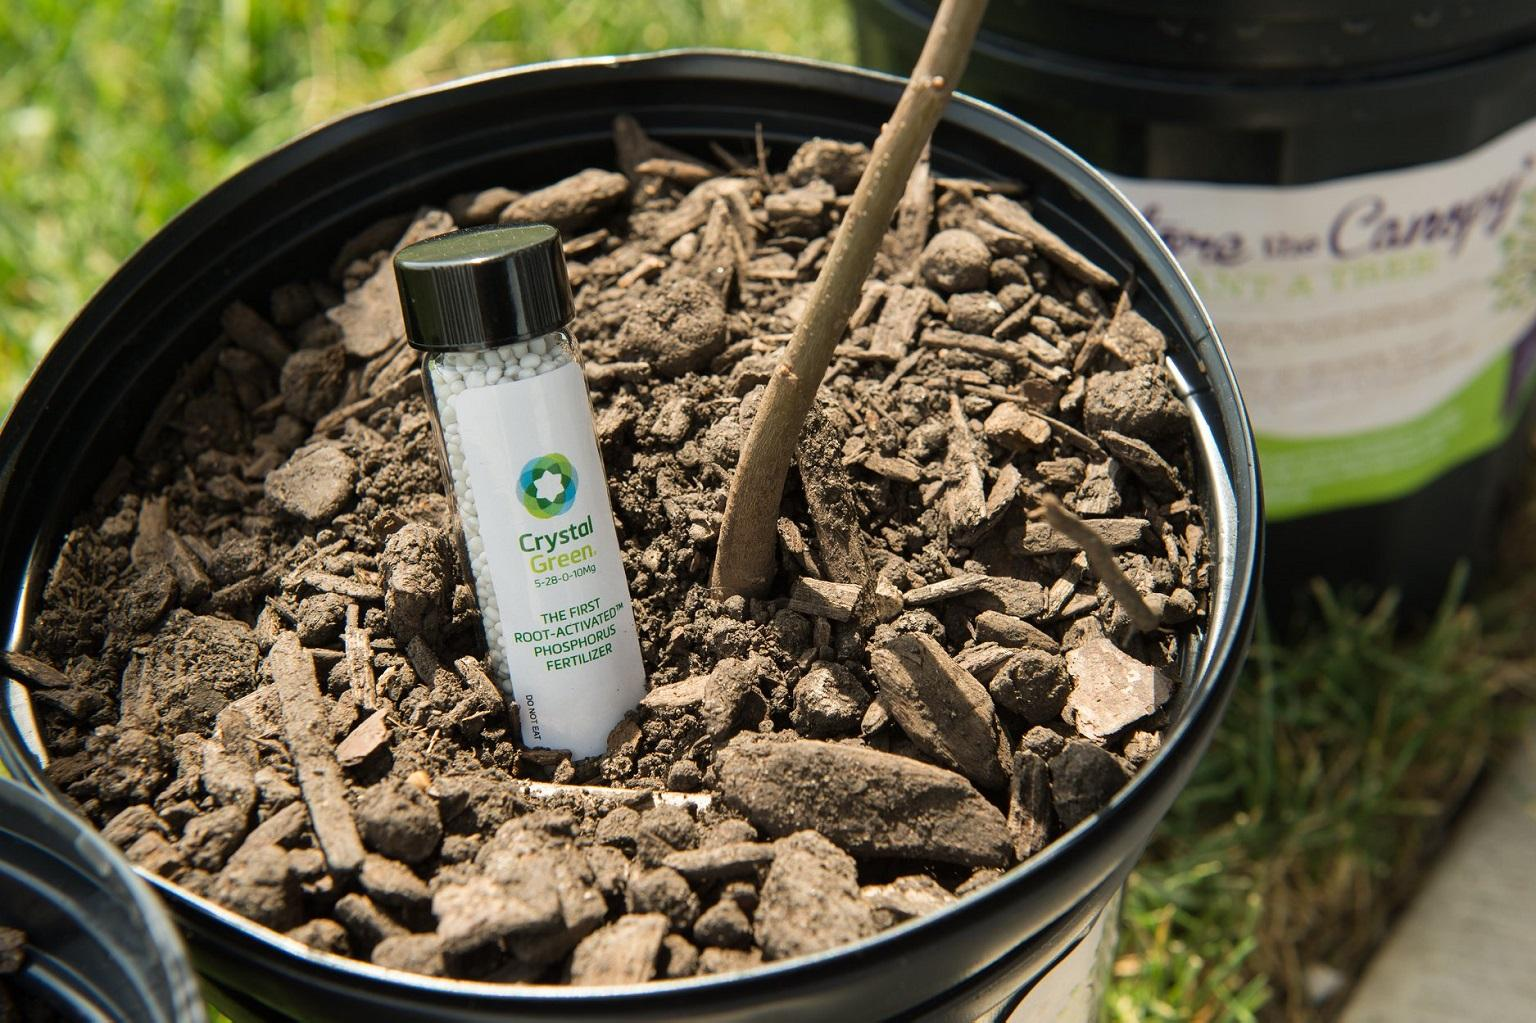 MWRD has created compost products that are planted with oak tree saplings, which help soak up stormwater. (Courtesy Metropolitan Water Reclamation District of Greater Chicago)